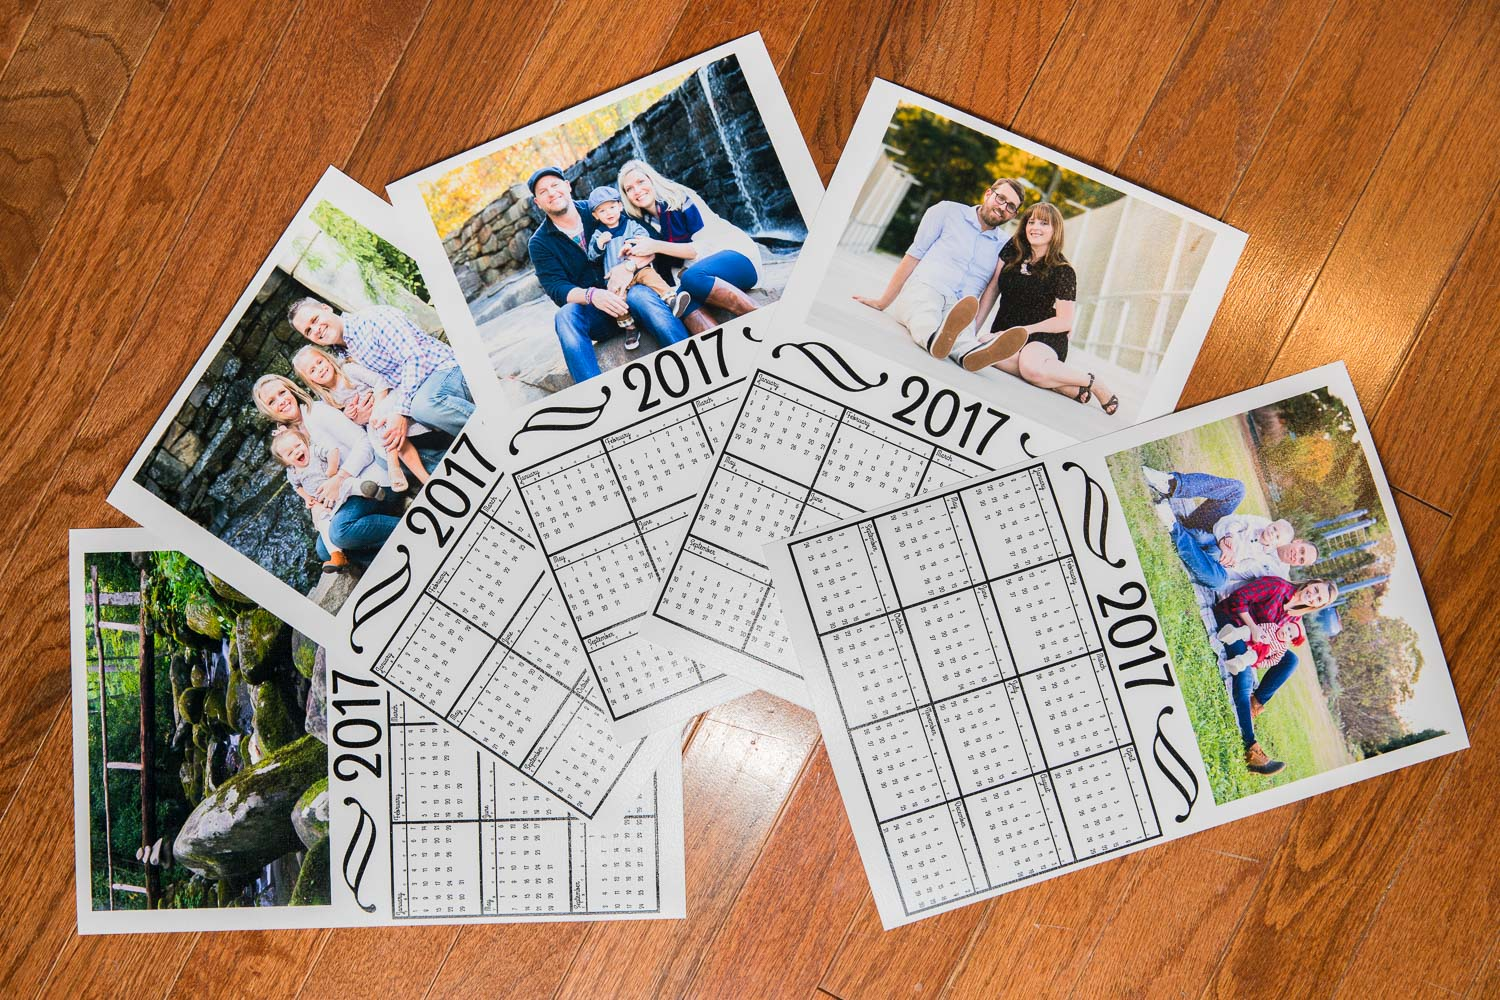 Get your freebie printable calendar when you sign up for the mailing list!